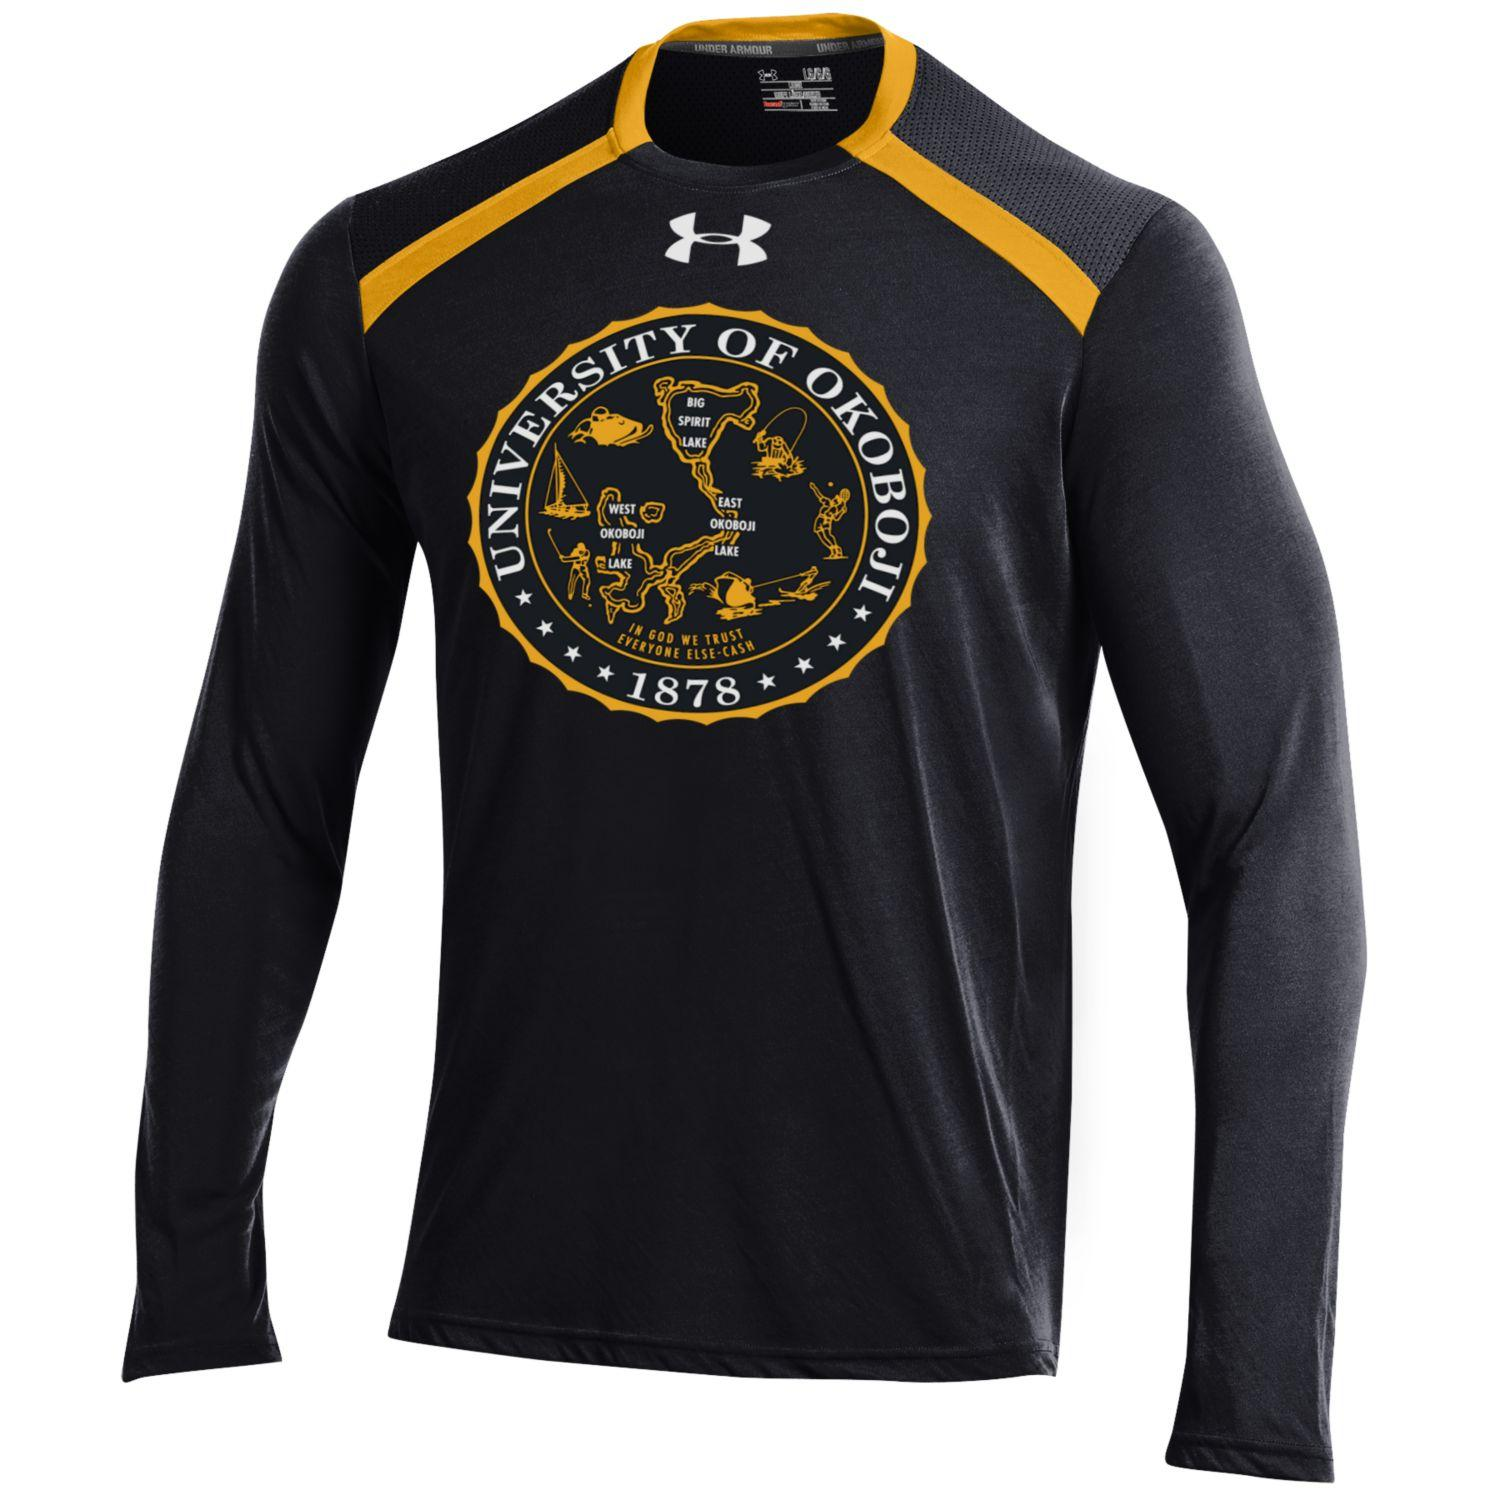 Under Armour Threadborne Black and Gold Longsleeve